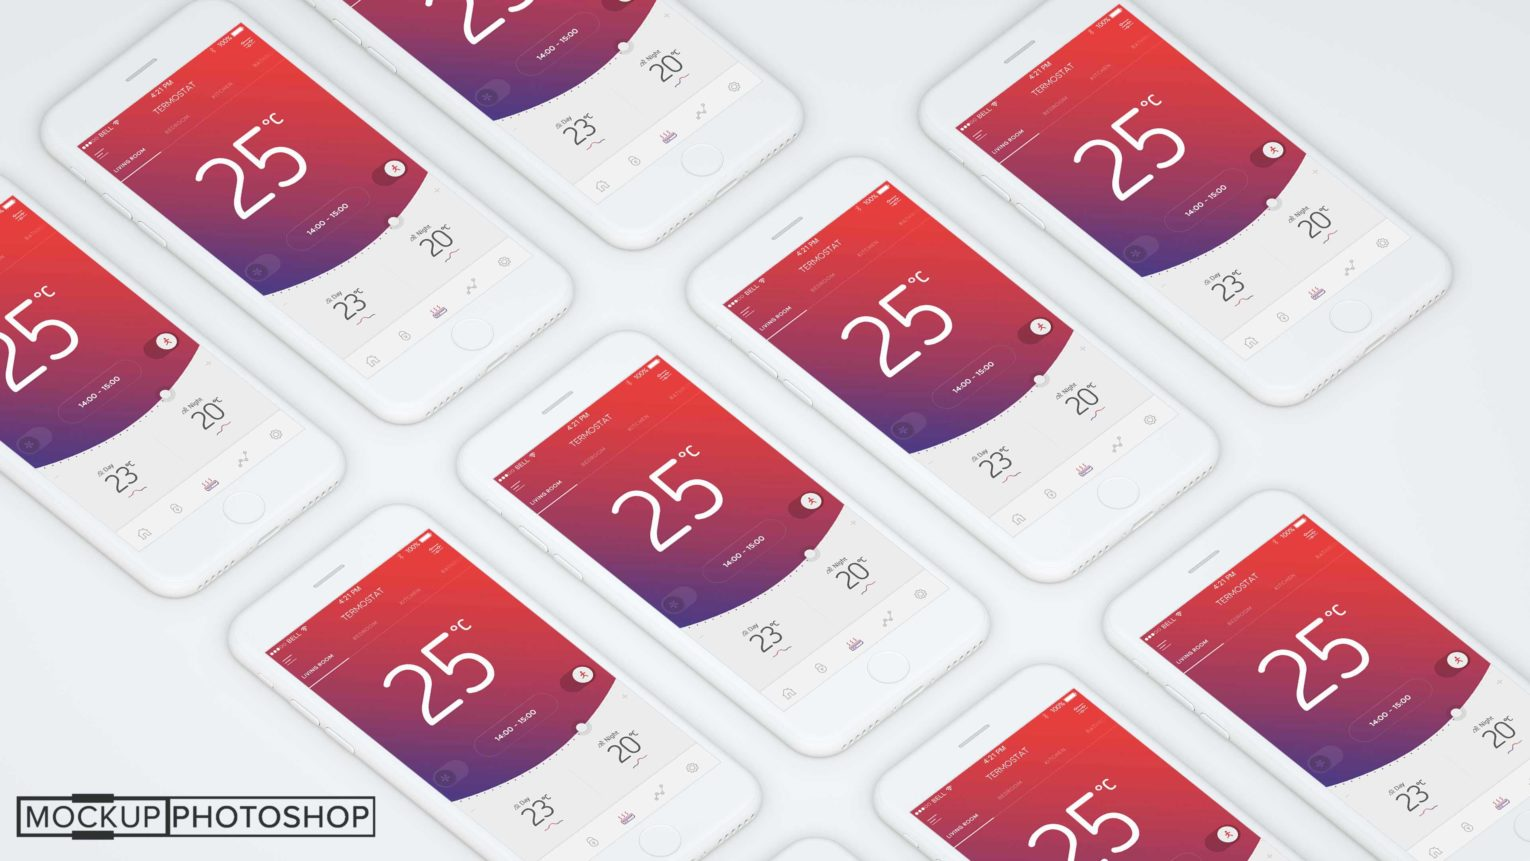 Awesome iPhone Mockup Collection